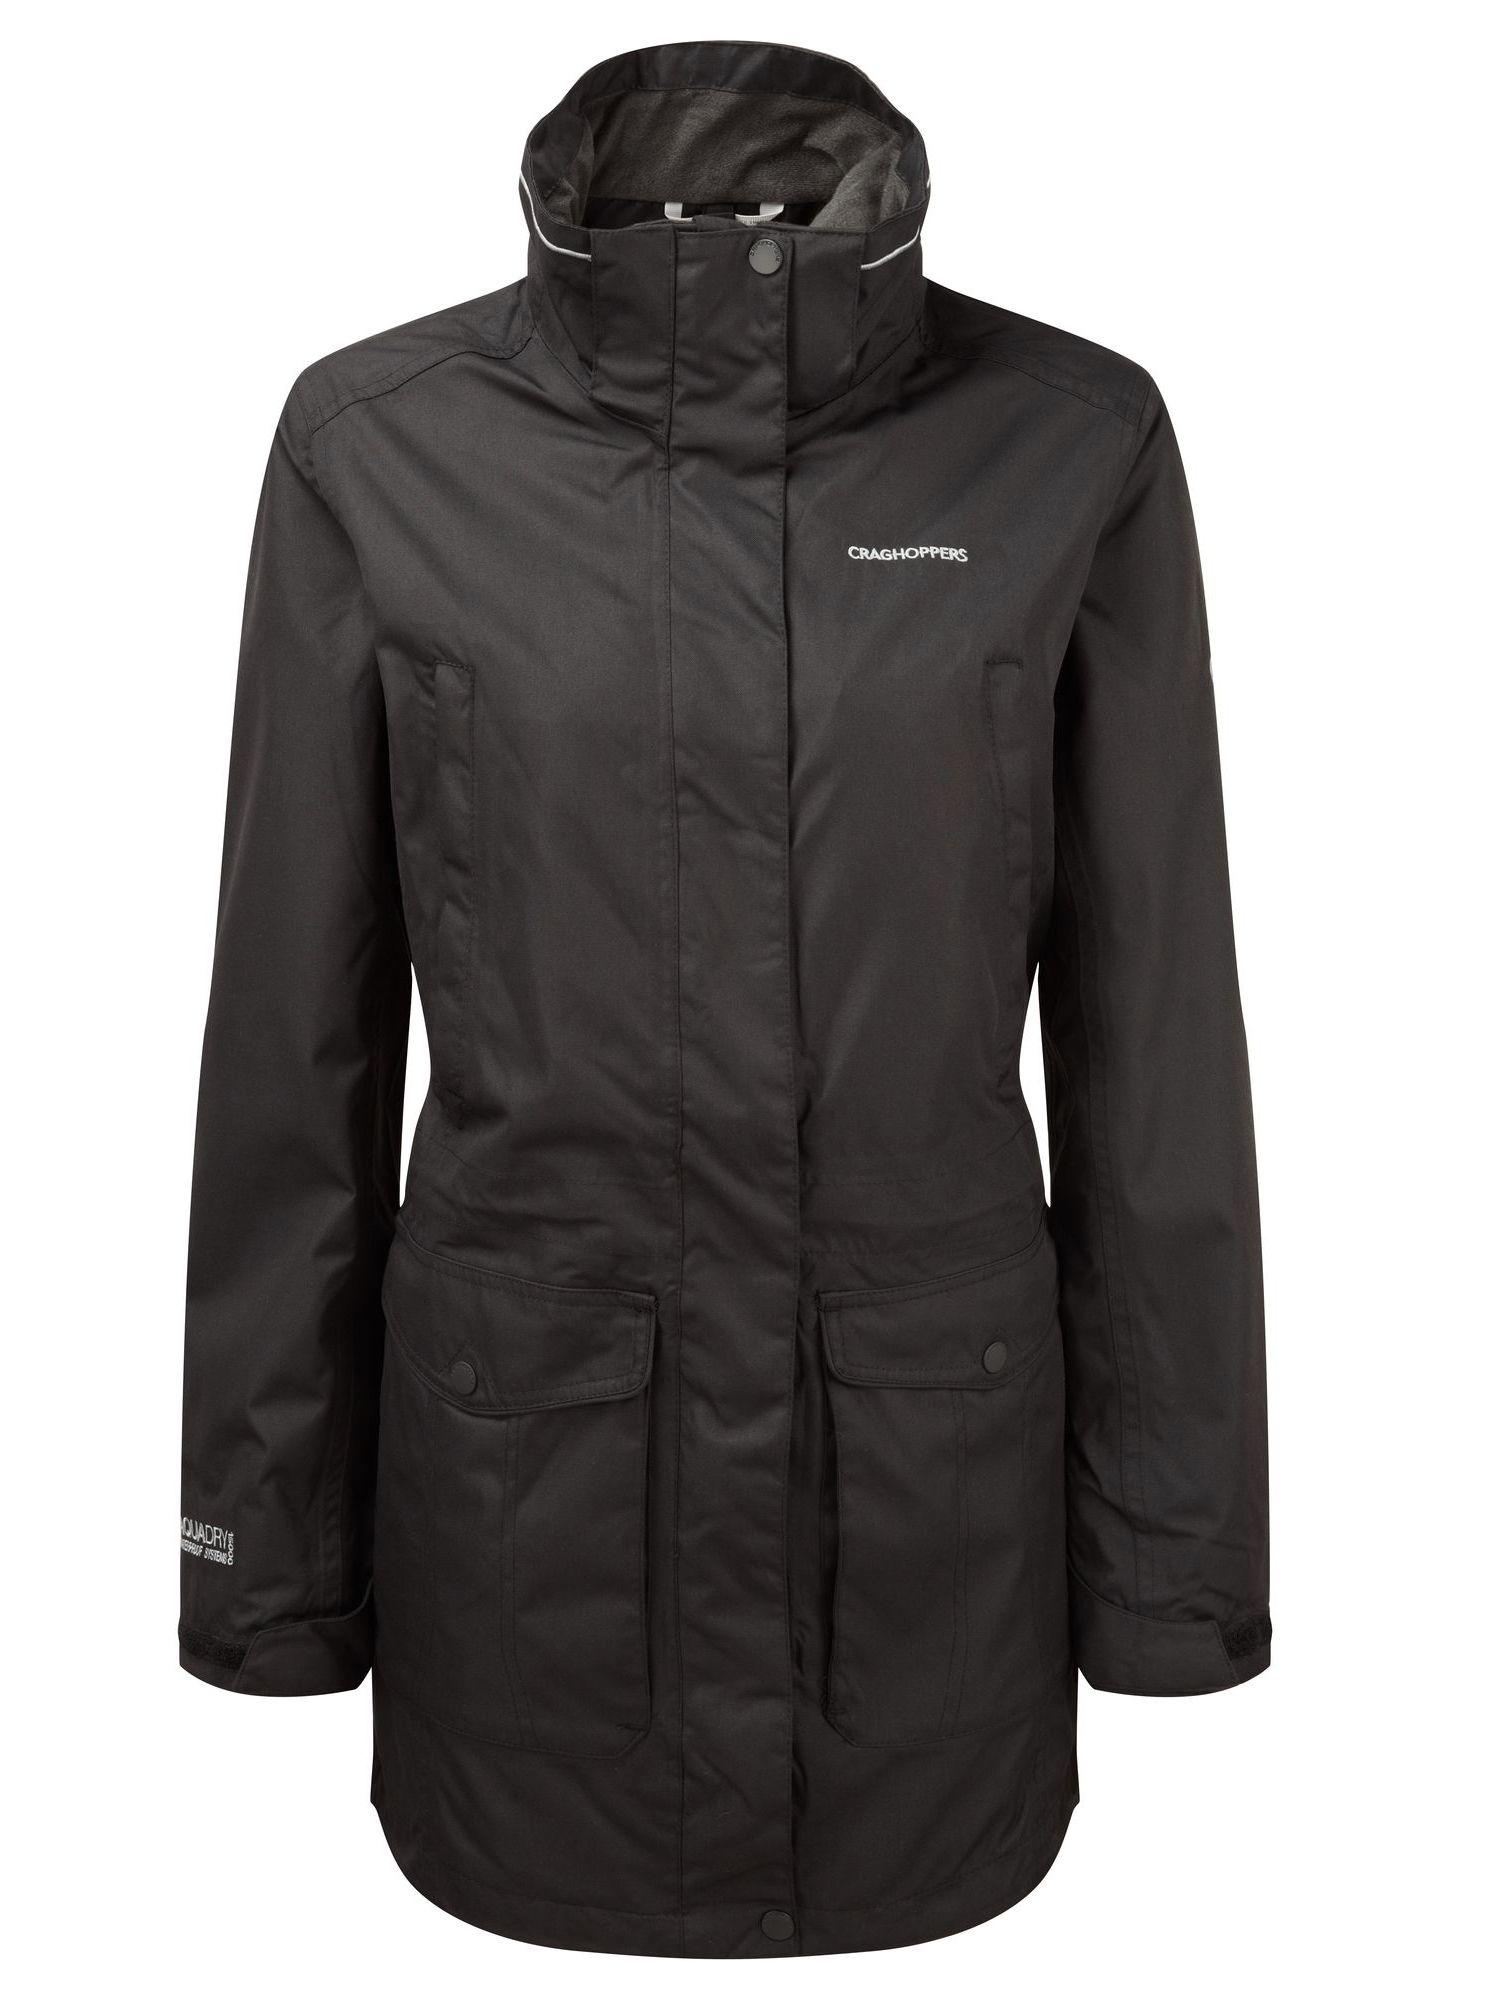 Craghoppers Madigan lll Long Waterproof Jacket, Black